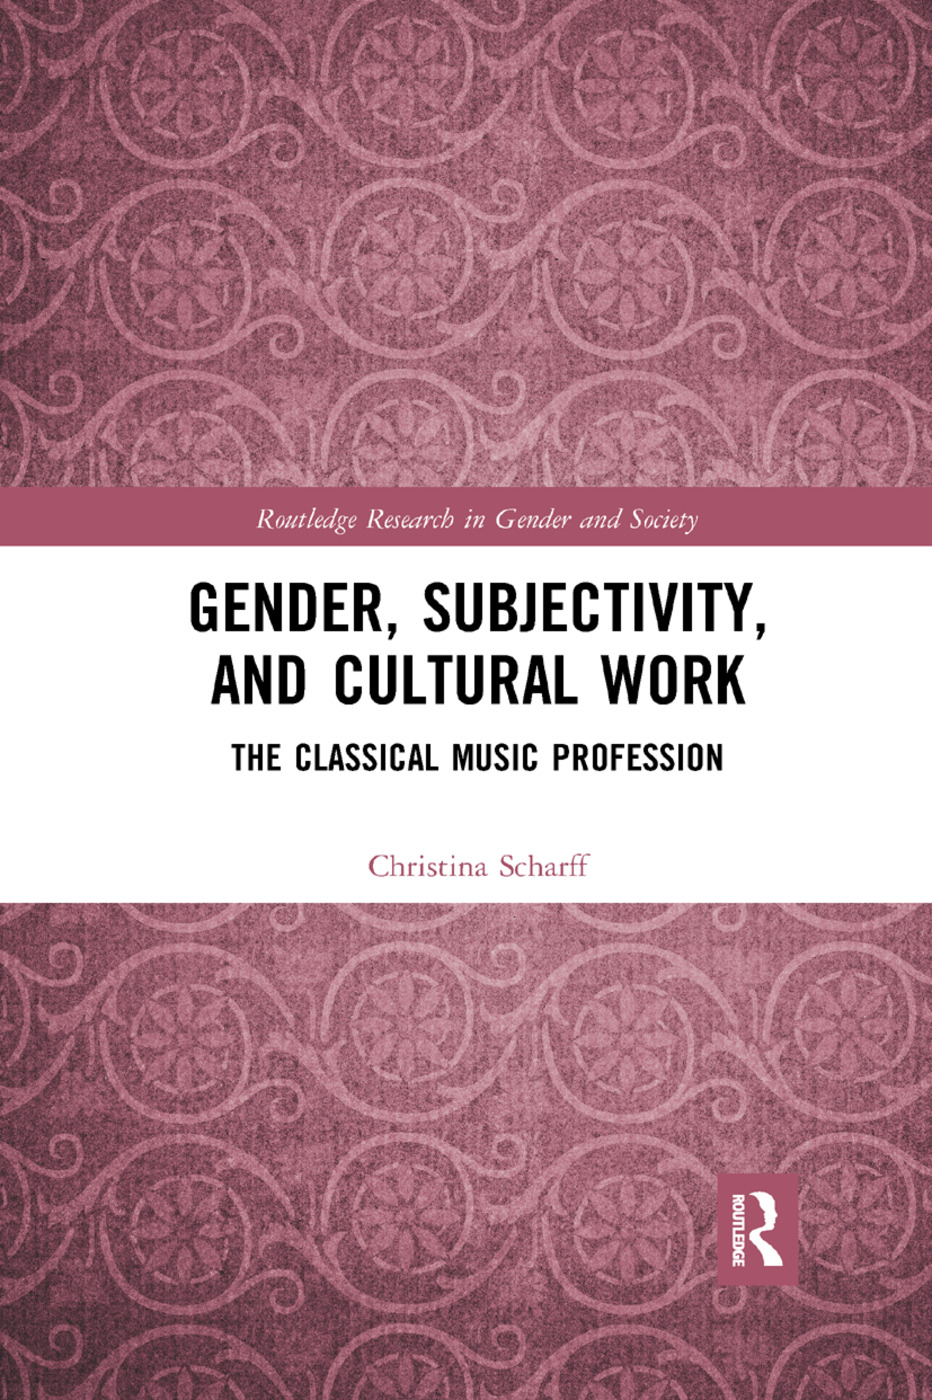 Gender, Subjectivity, and Cultural Work: The Classical Music Profession book cover